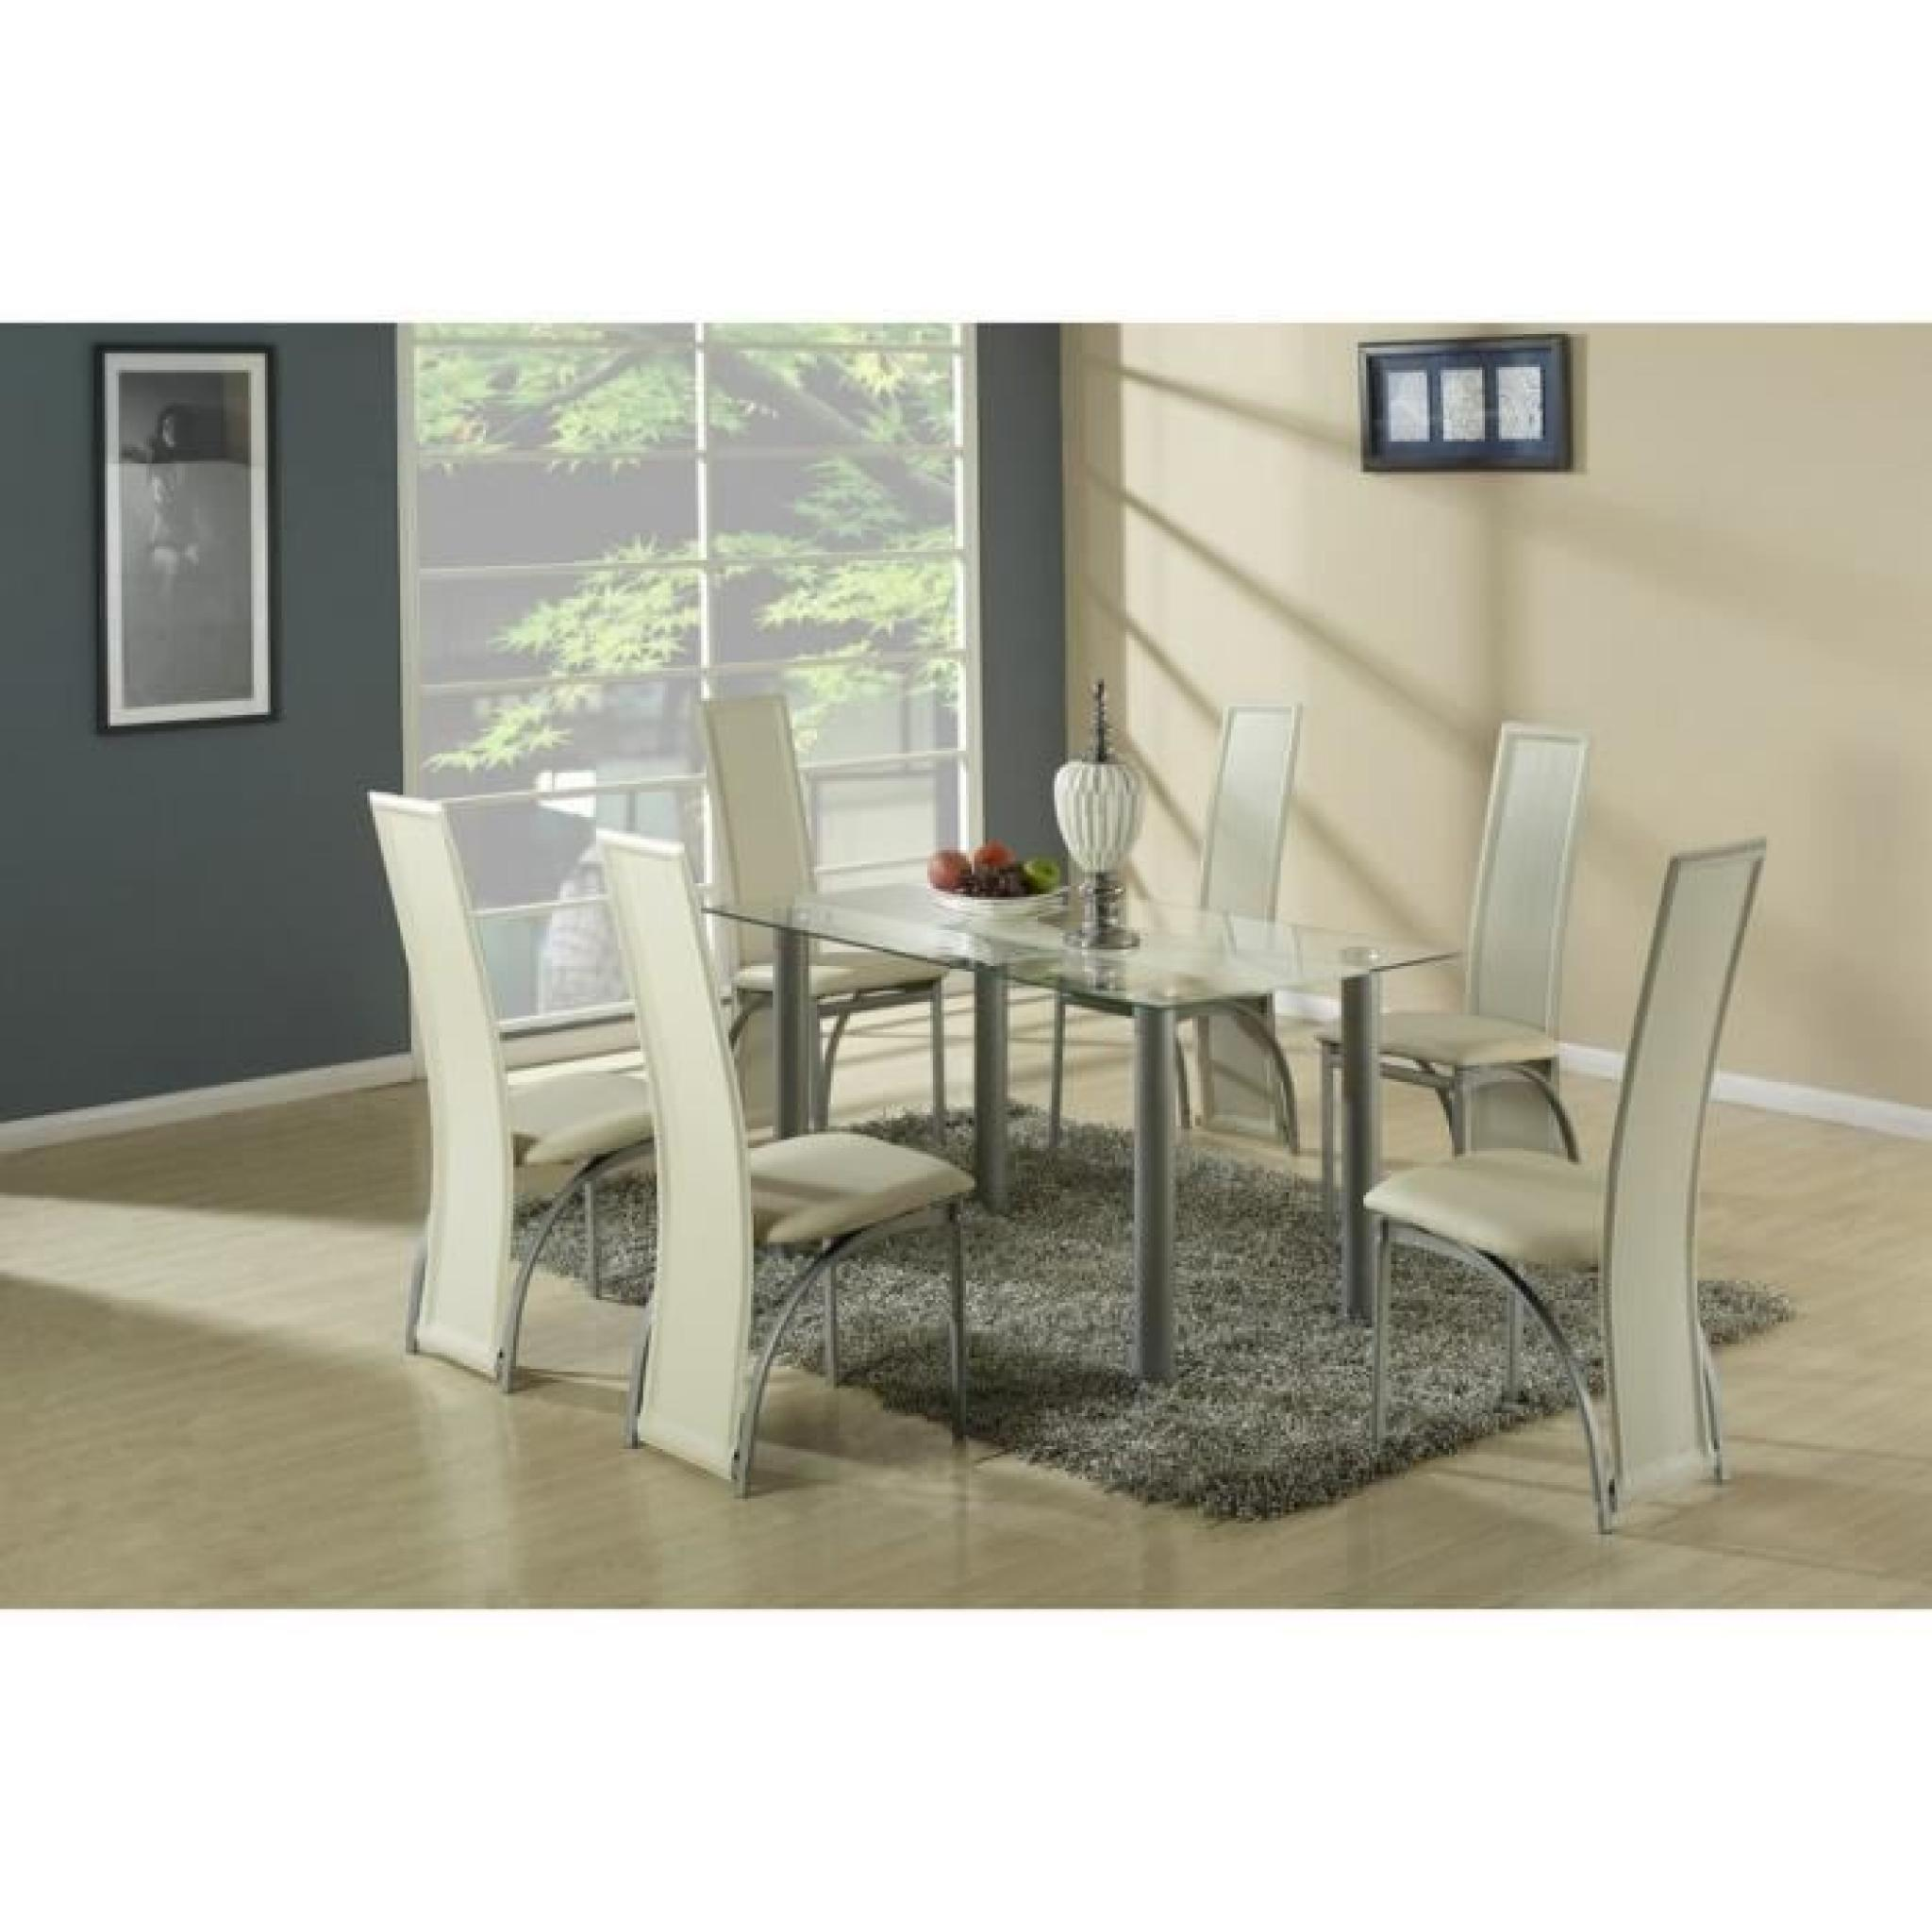 Grande table a manger design table blanche et bois of for Table salle a manger en verre